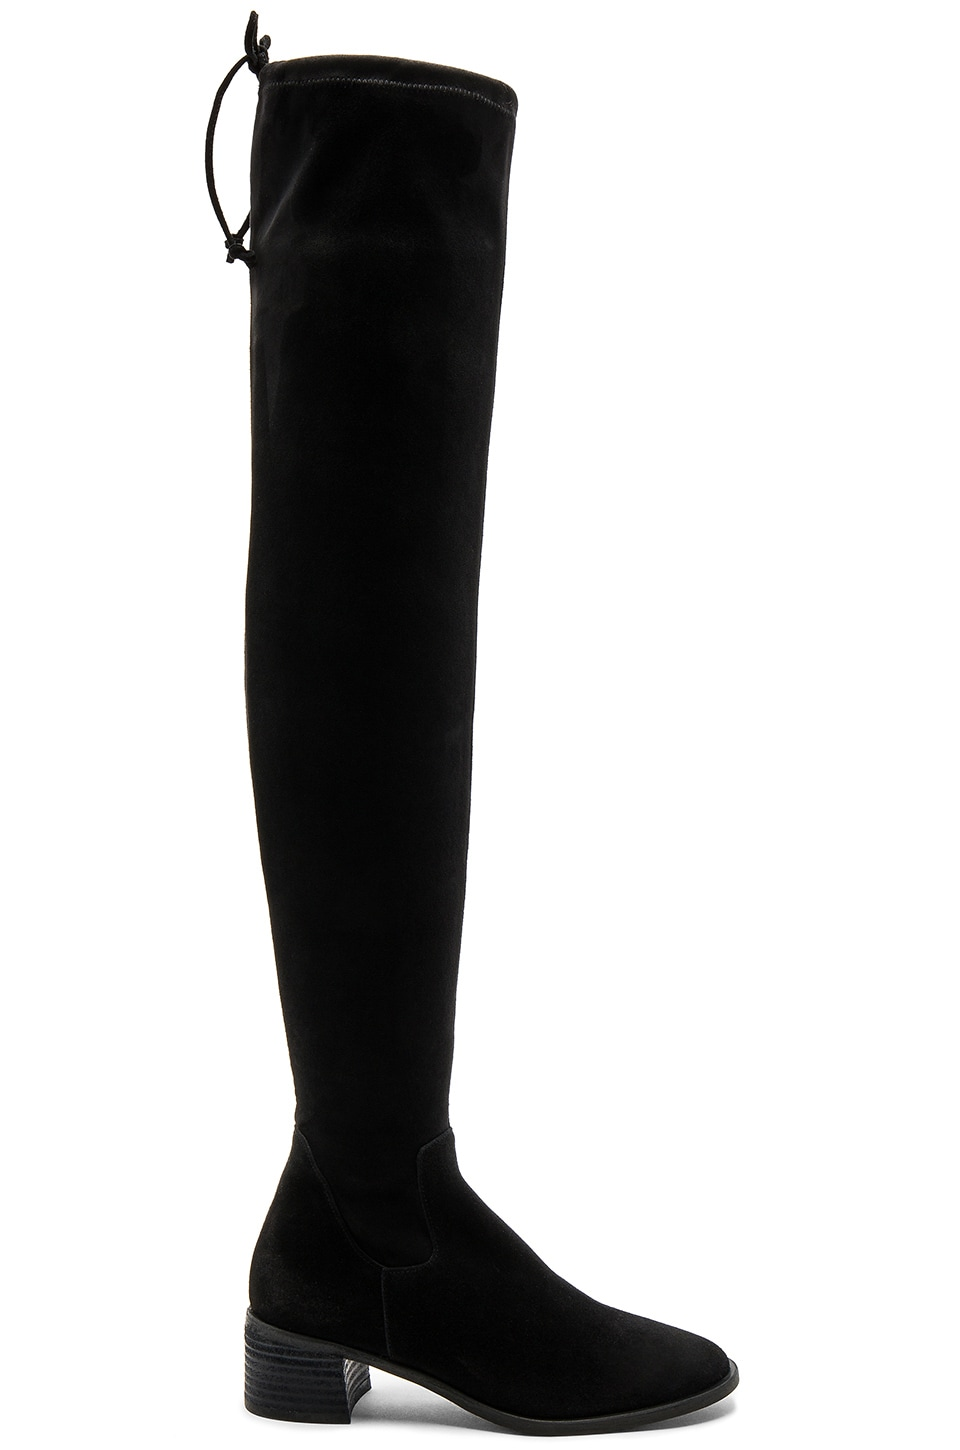 Free People Coast to Coast Over the Knee Boot in Black